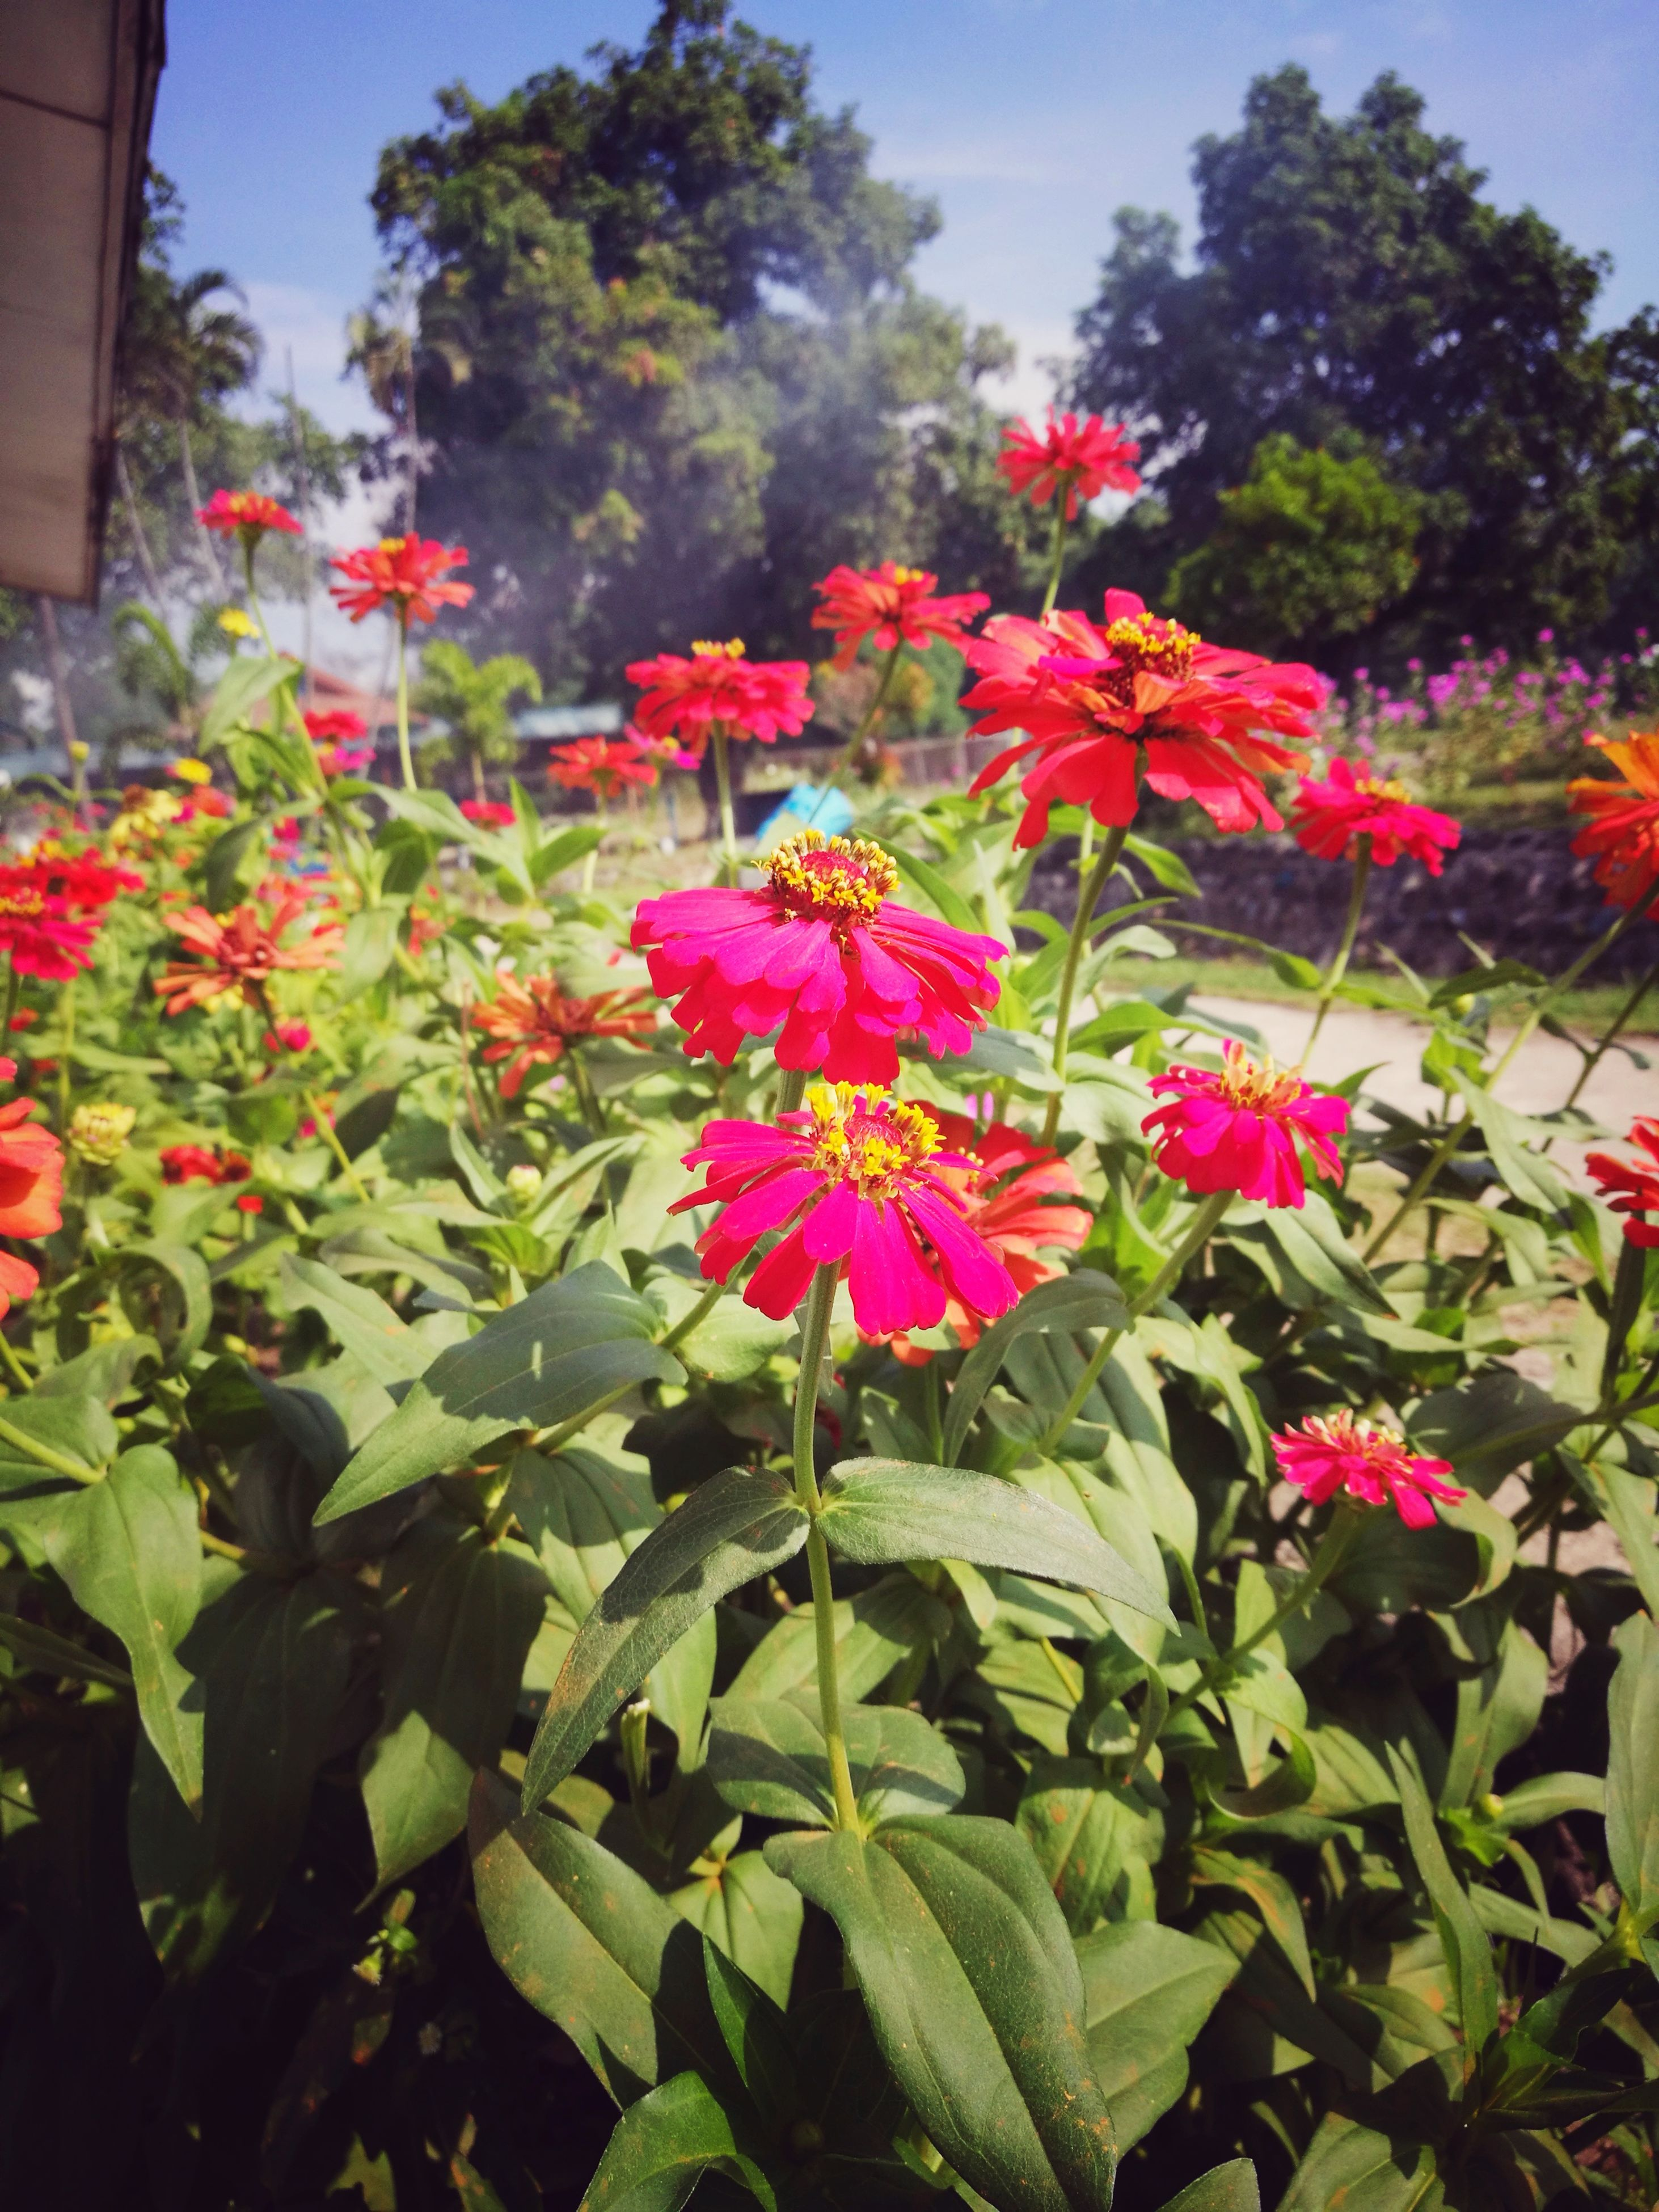 flower, growth, pink color, beauty in nature, plant, nature, blooming, petal, fragility, freshness, no people, outdoors, flower head, day, leaf, close-up, zinnia